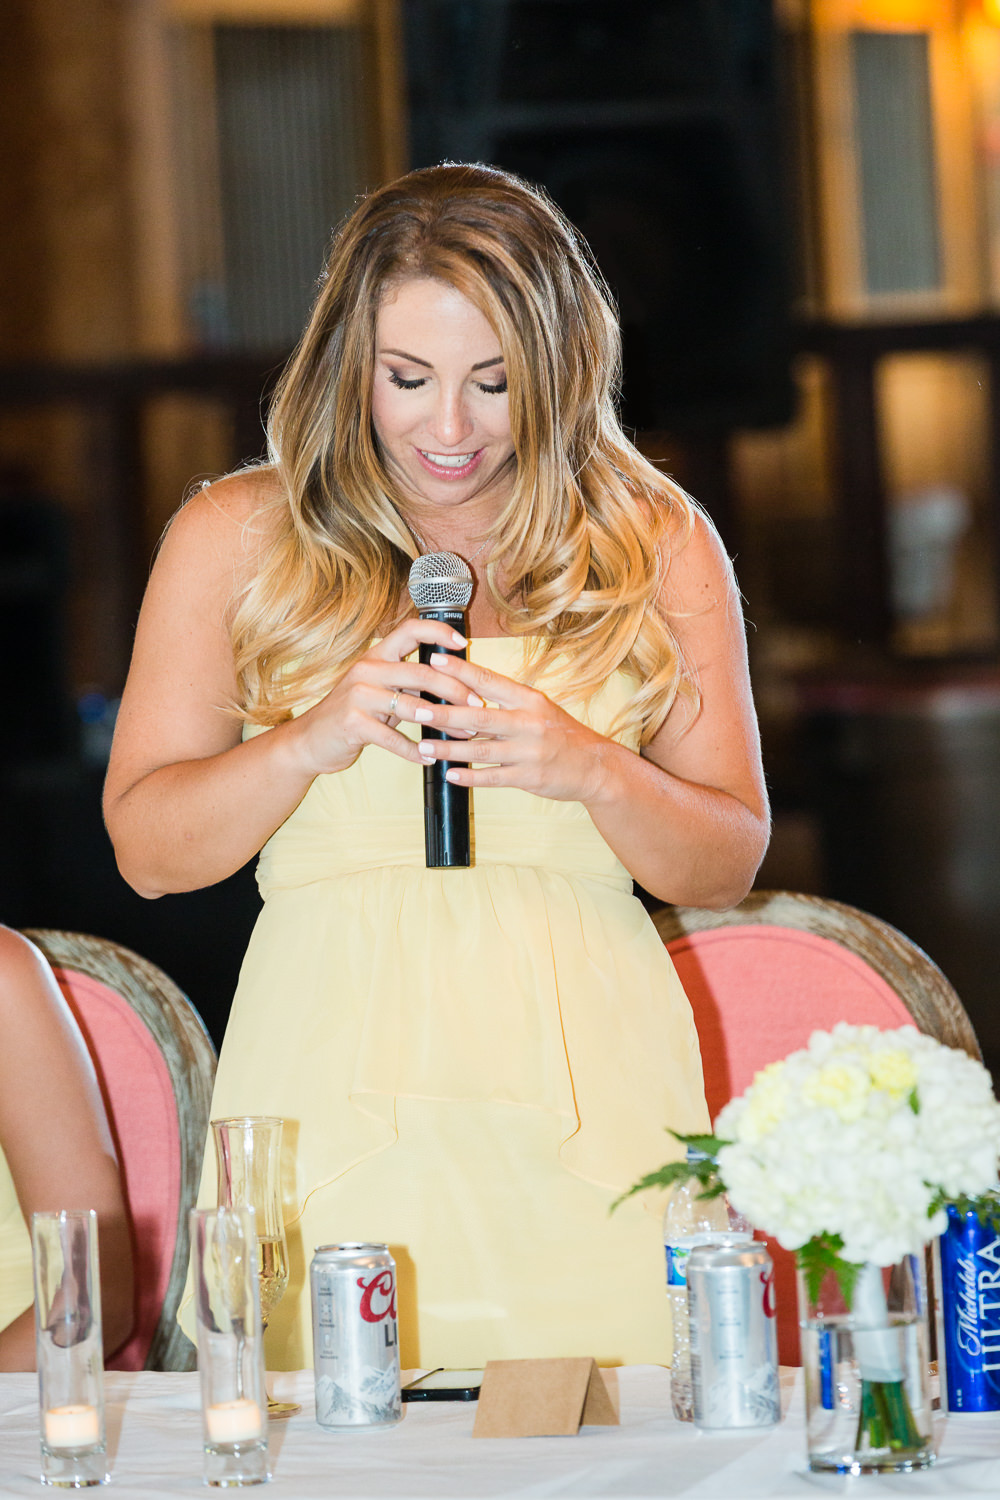 billings-montana-swift-river-ranch-wedding-reception-maid-of-honor-speech.jpg